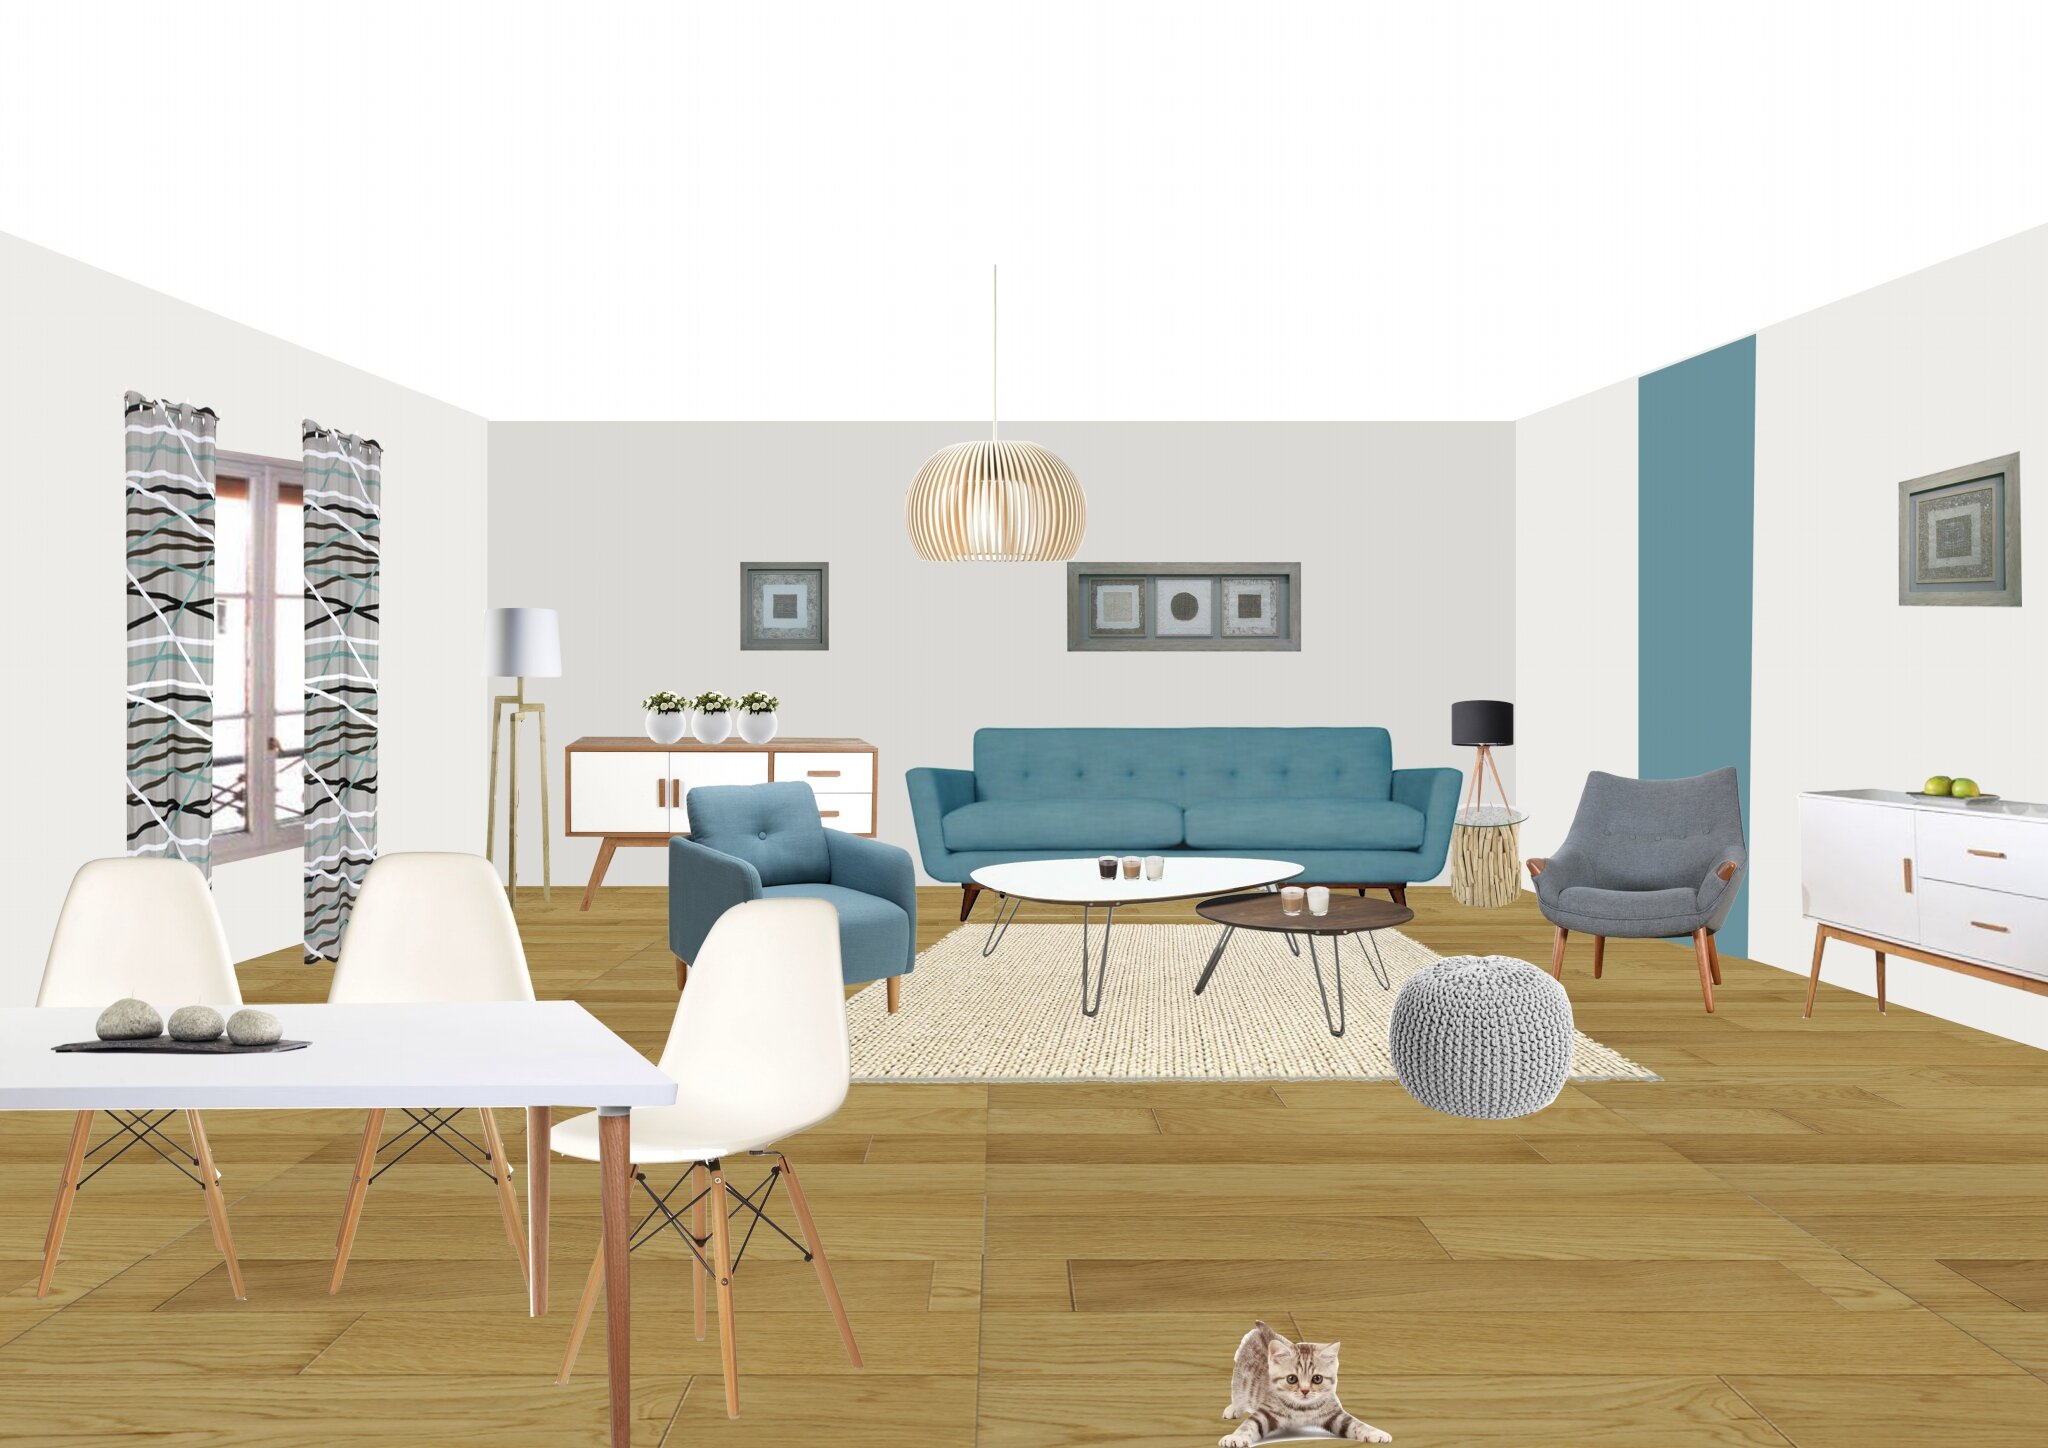 Perspective sous photoshop style scandinave so d co for Decoration style scandinave